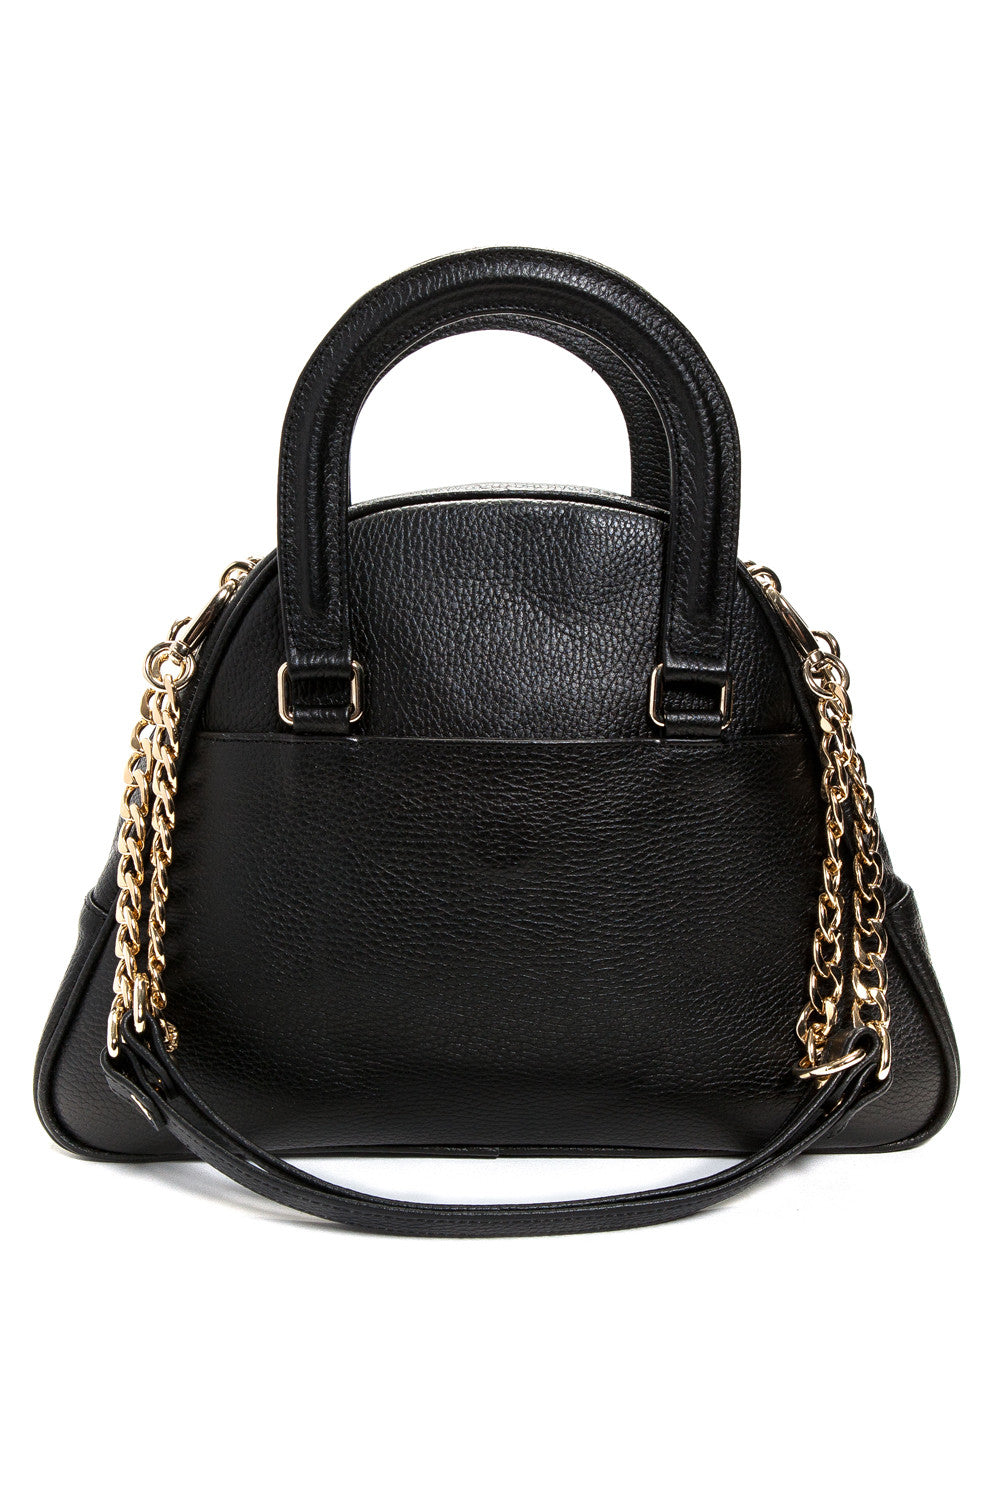 Black 'Marissa' Small Tote Handbag | Mel Boteri | Back View With Detachable Straps